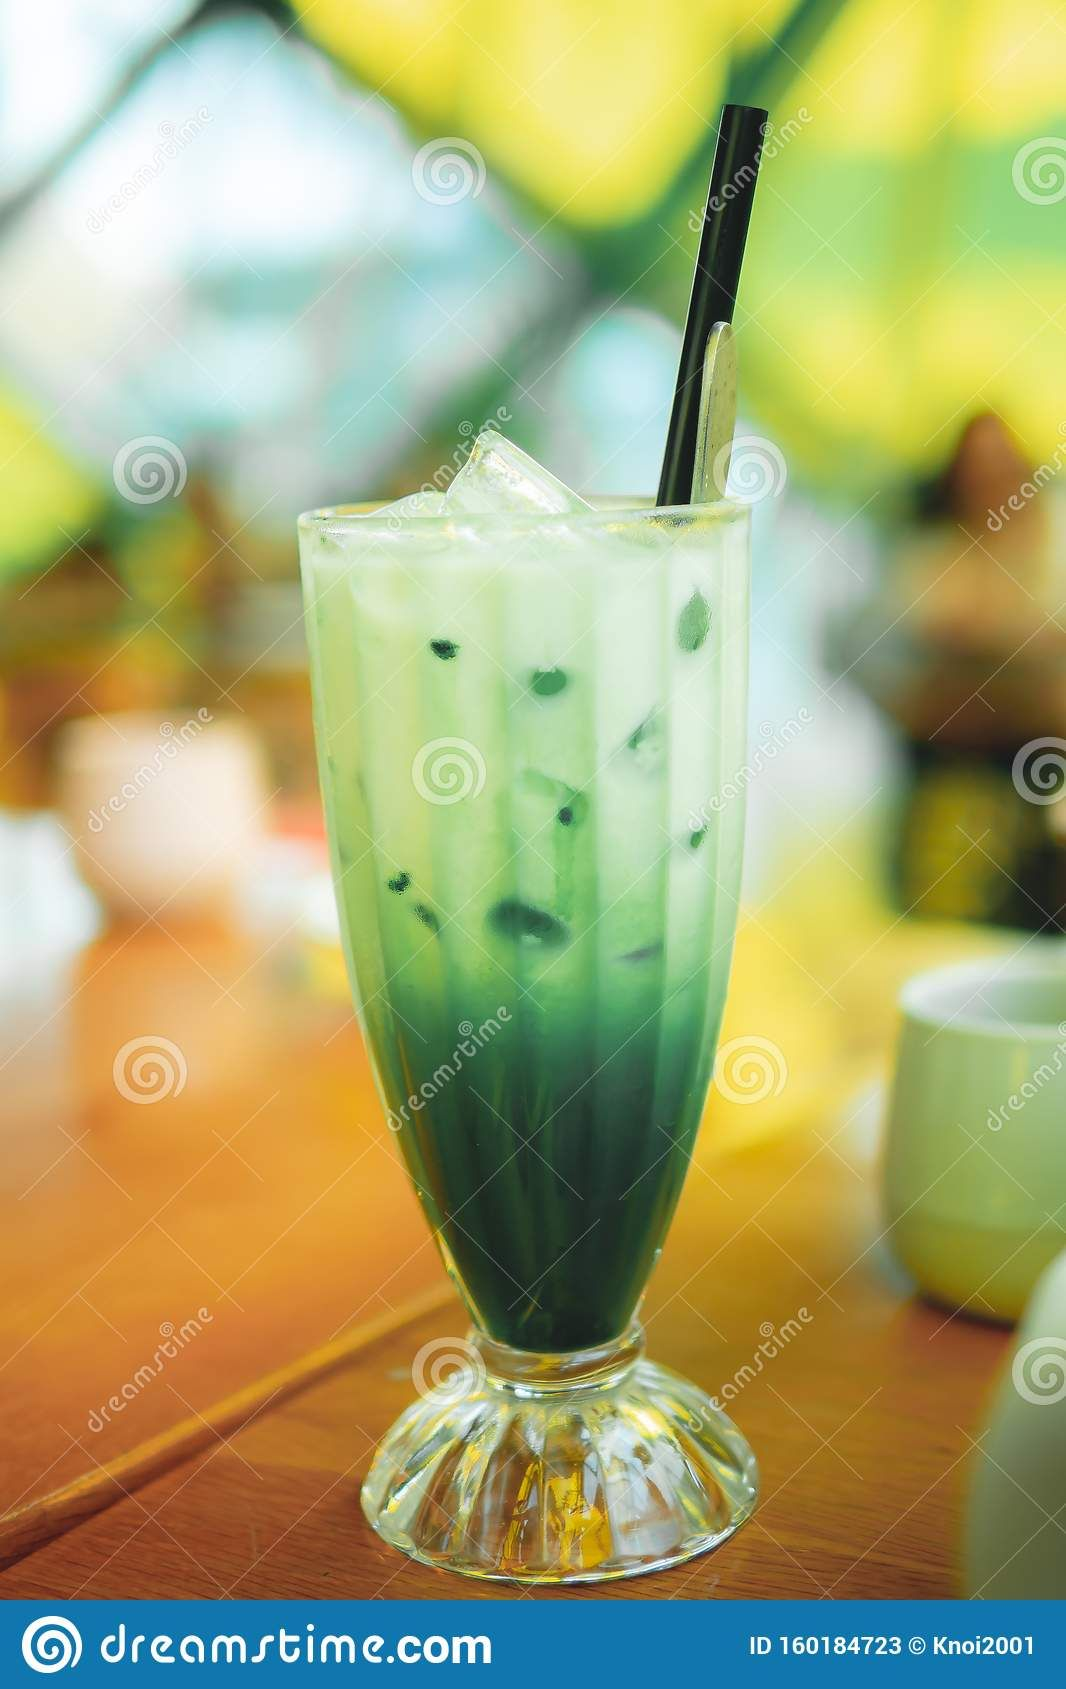 Photo about Iced matcha green tea latte with Milk in tall